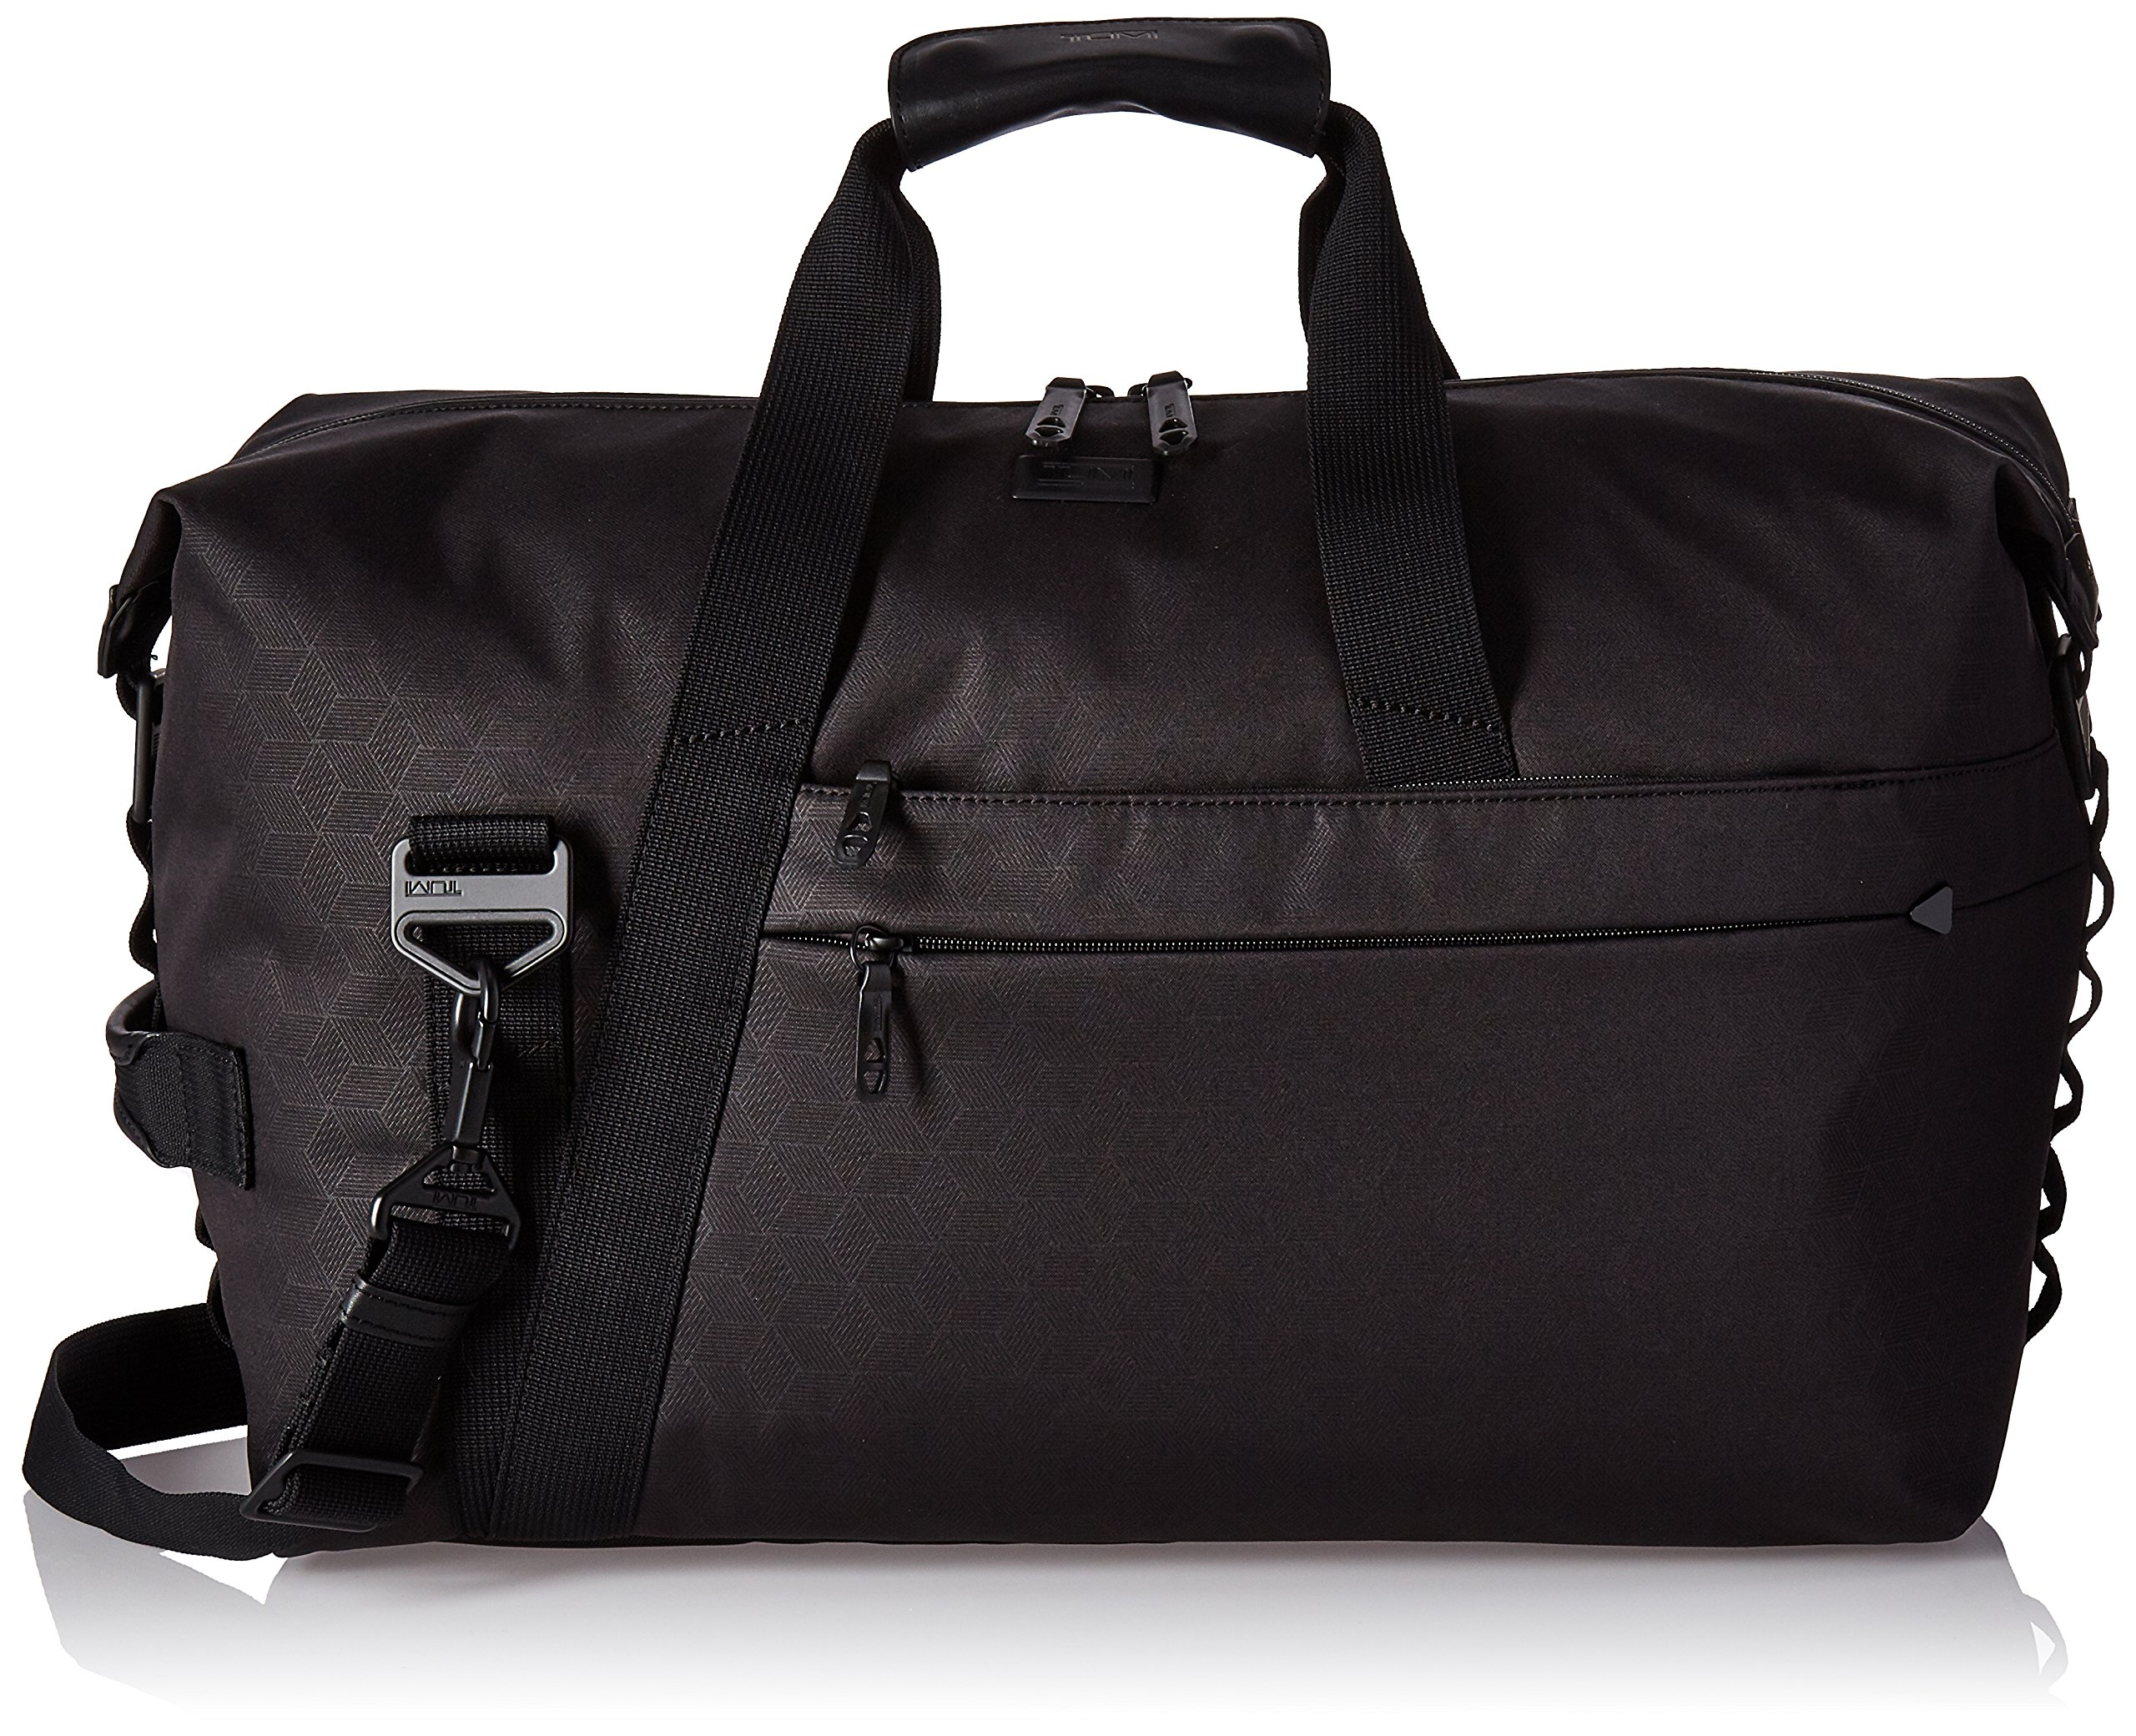 Tumi Tahoe Sonoma Day Duffel Bag, Black, One Size